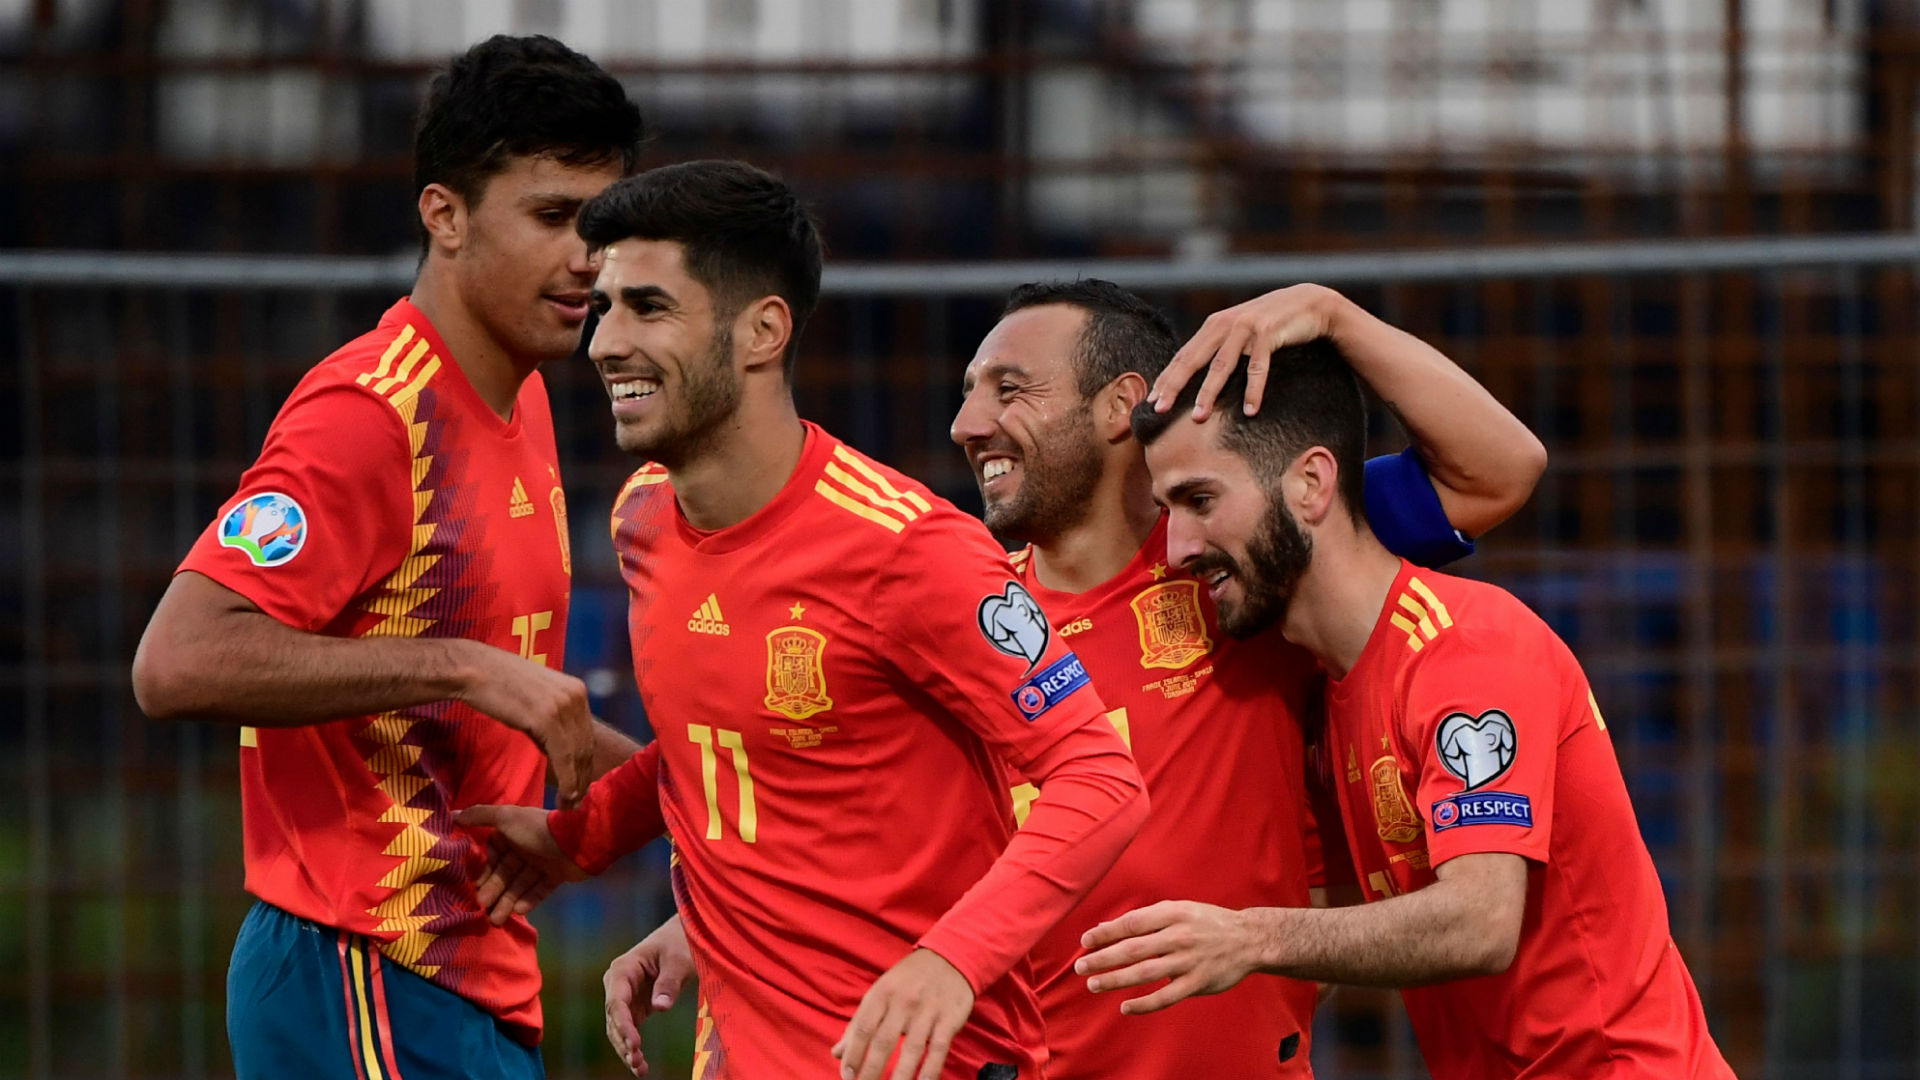 Team-mates made Spain return easy - Cazorla